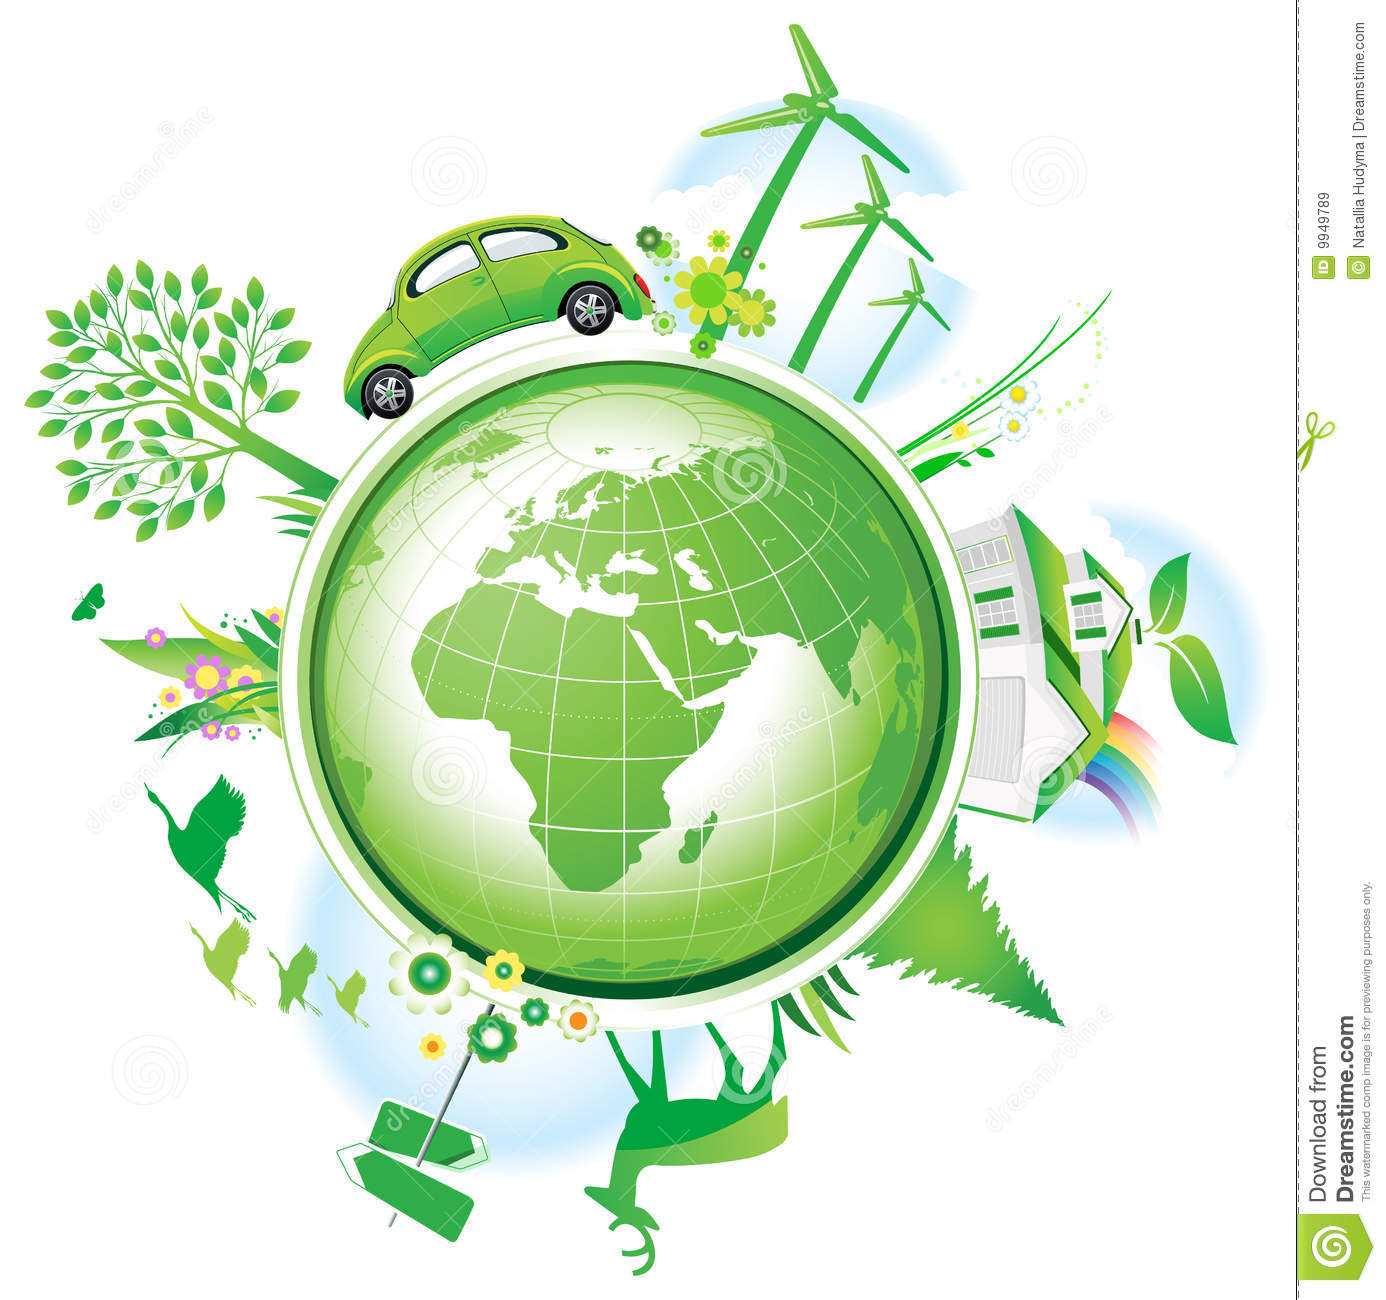 Energy Conservation Clipart.